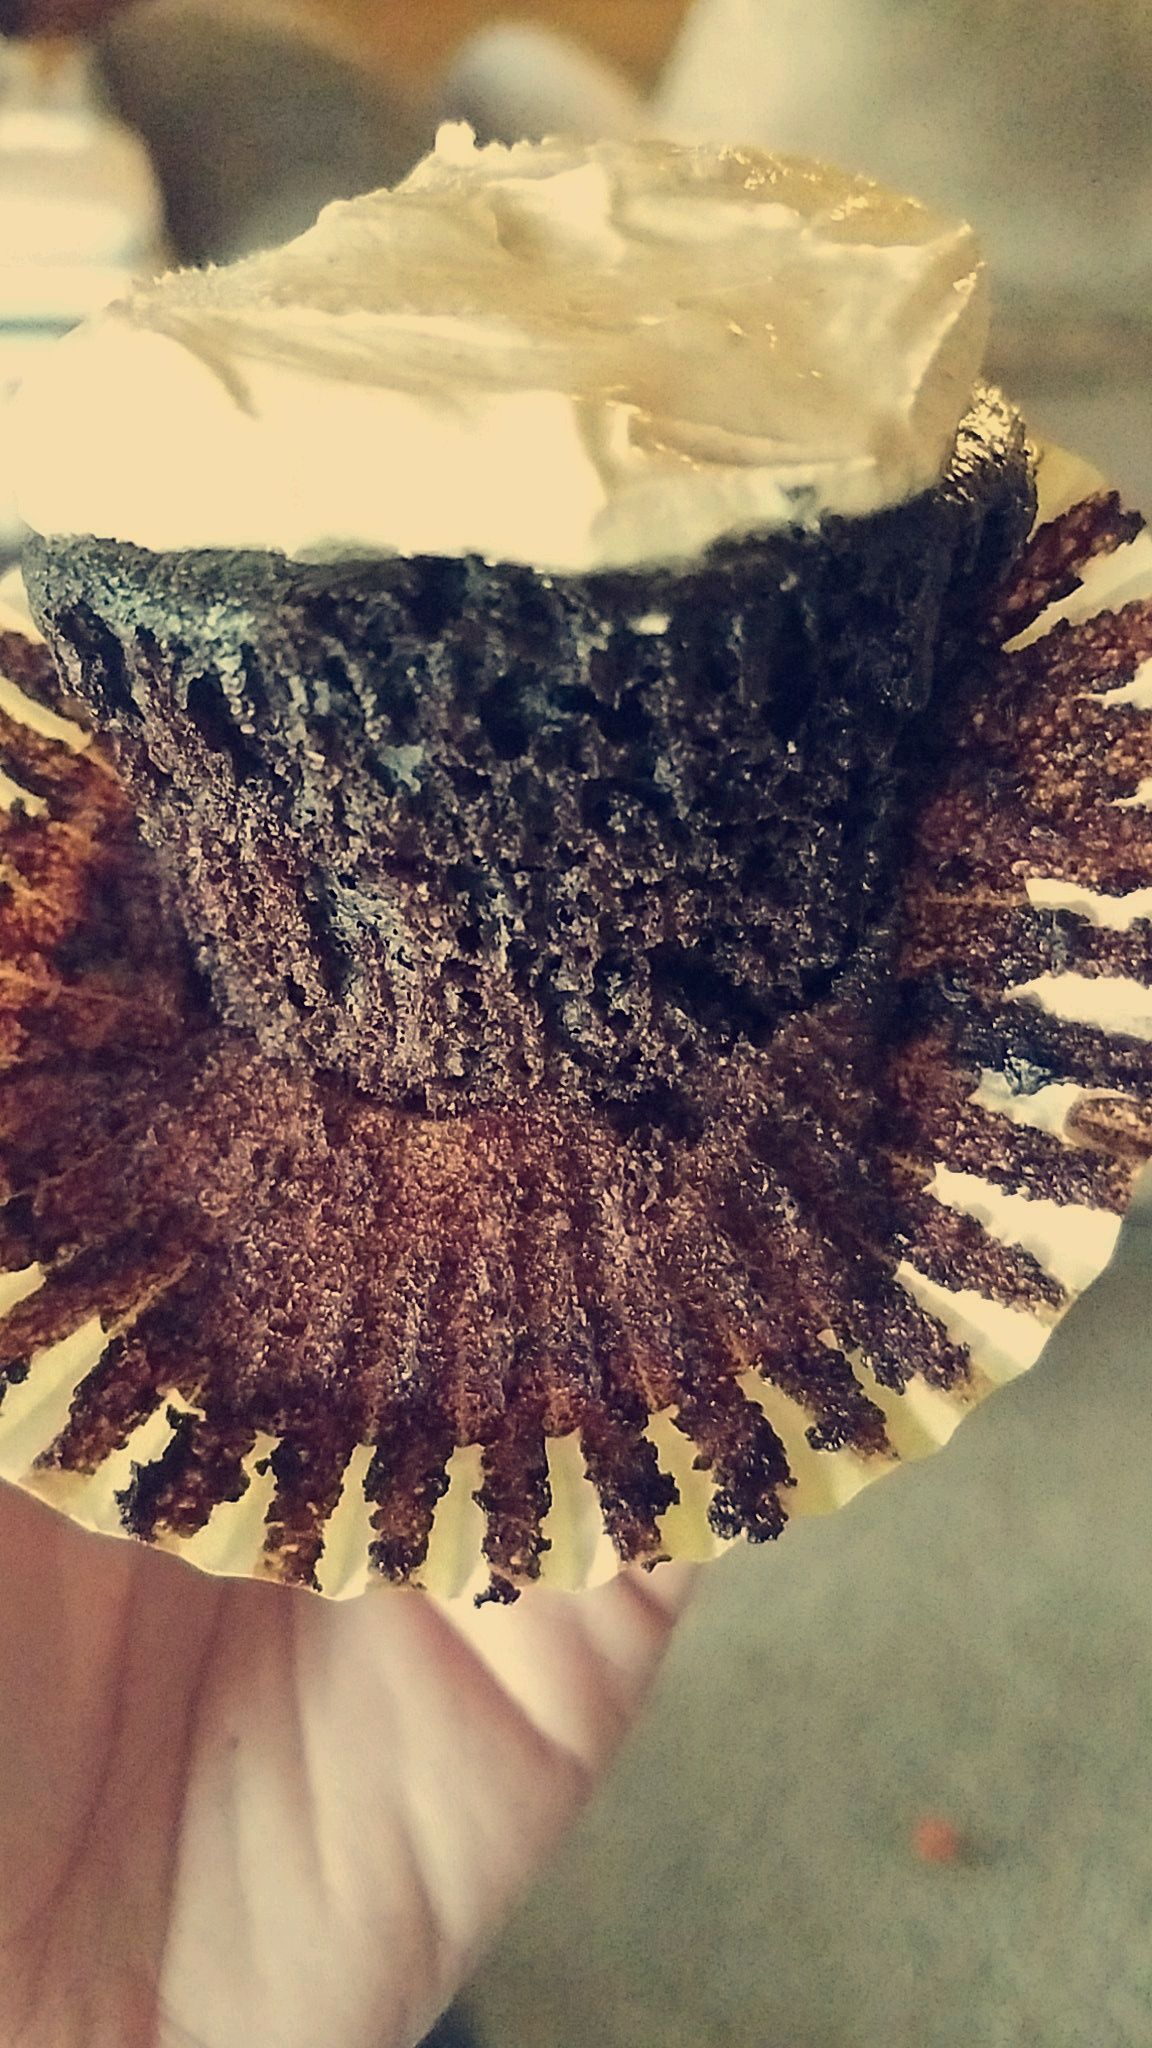 [Homemade] Chocolate Cupcakes with Peanut Butter Marshmallow Fluff Frosting #recipes #food #cooking #delicious #foodie #foodrecipes #cook #recipe #health #marshmallowflufffrosting [Homemade] Chocolate Cupcakes with Peanut Butter Marshmallow Fluff Frosting #recipes #food #cooking #delicious #foodie #foodrecipes #cook #recipe #health #marshmallowfluffrecipes [Homemade] Chocolate Cupcakes with Peanut Butter Marshmallow Fluff Frosting #recipes #food #cooking #delicious #foodie #foodrecipes #cook #re #marshmallowfluffrecipes